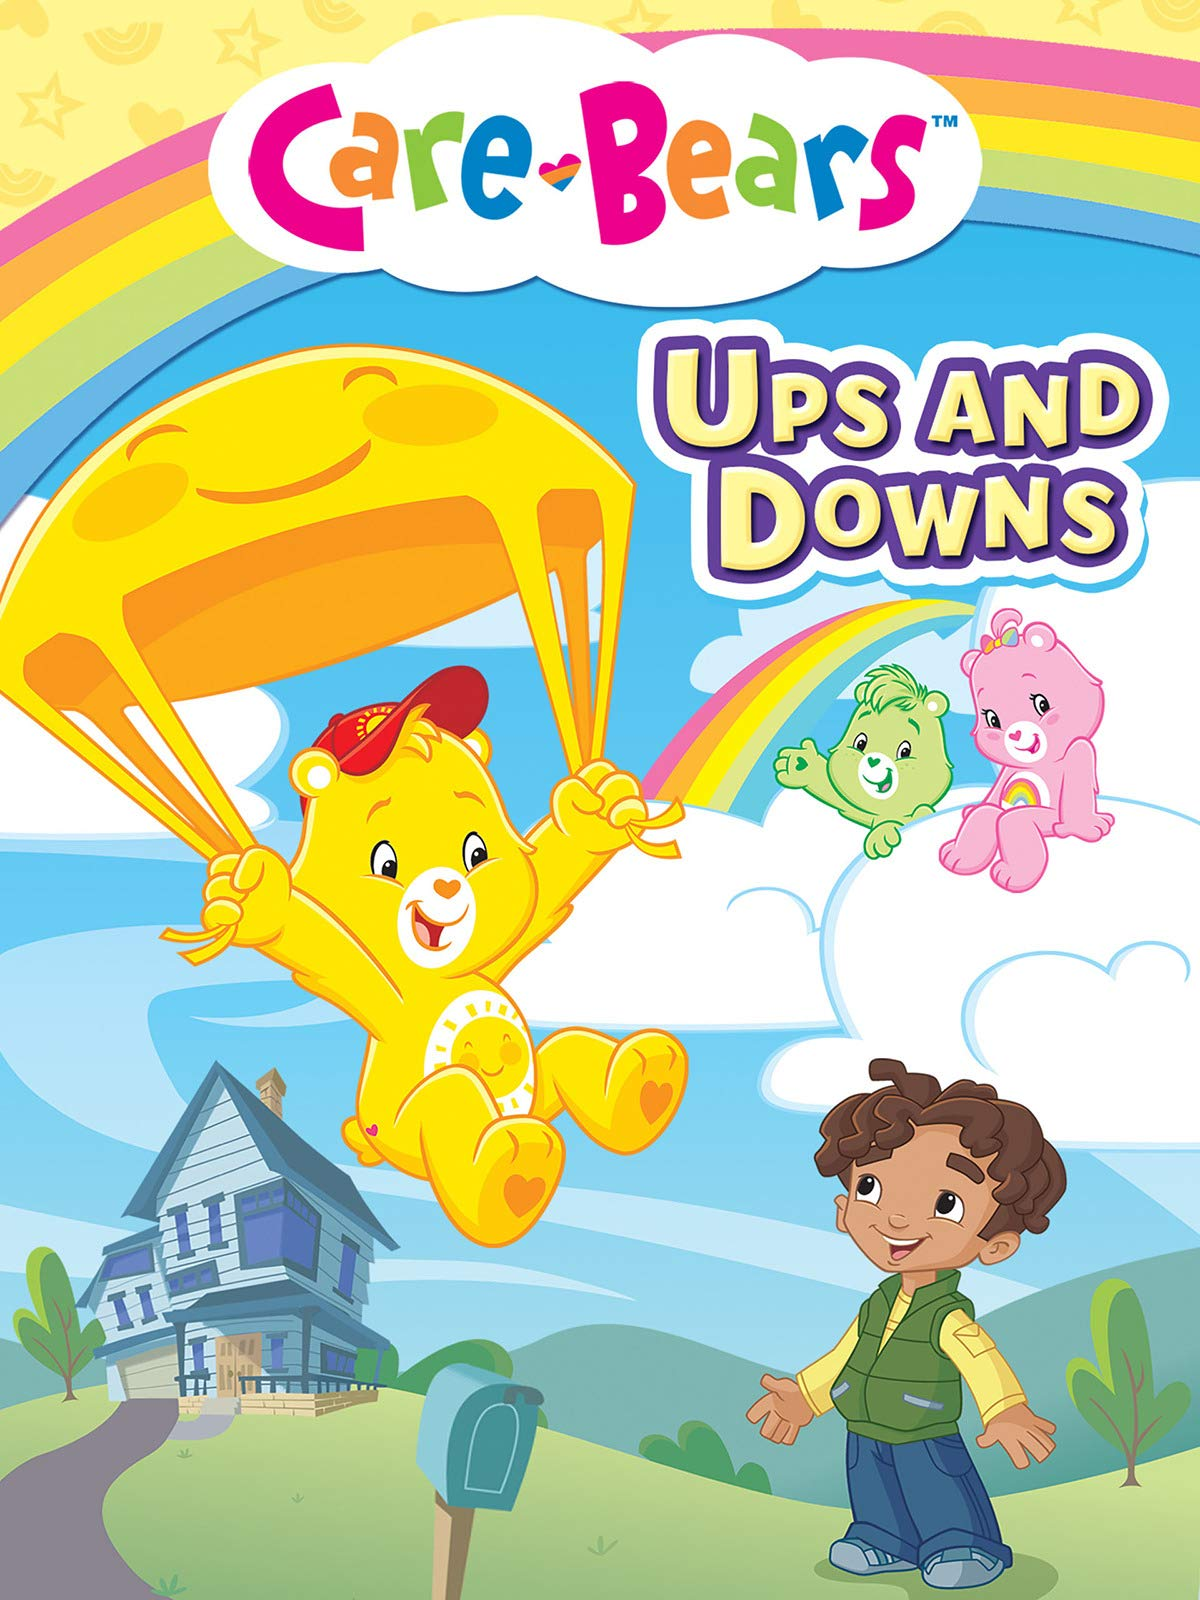 Care Bears: Ups and Downs on Amazon Prime Instant Video UK